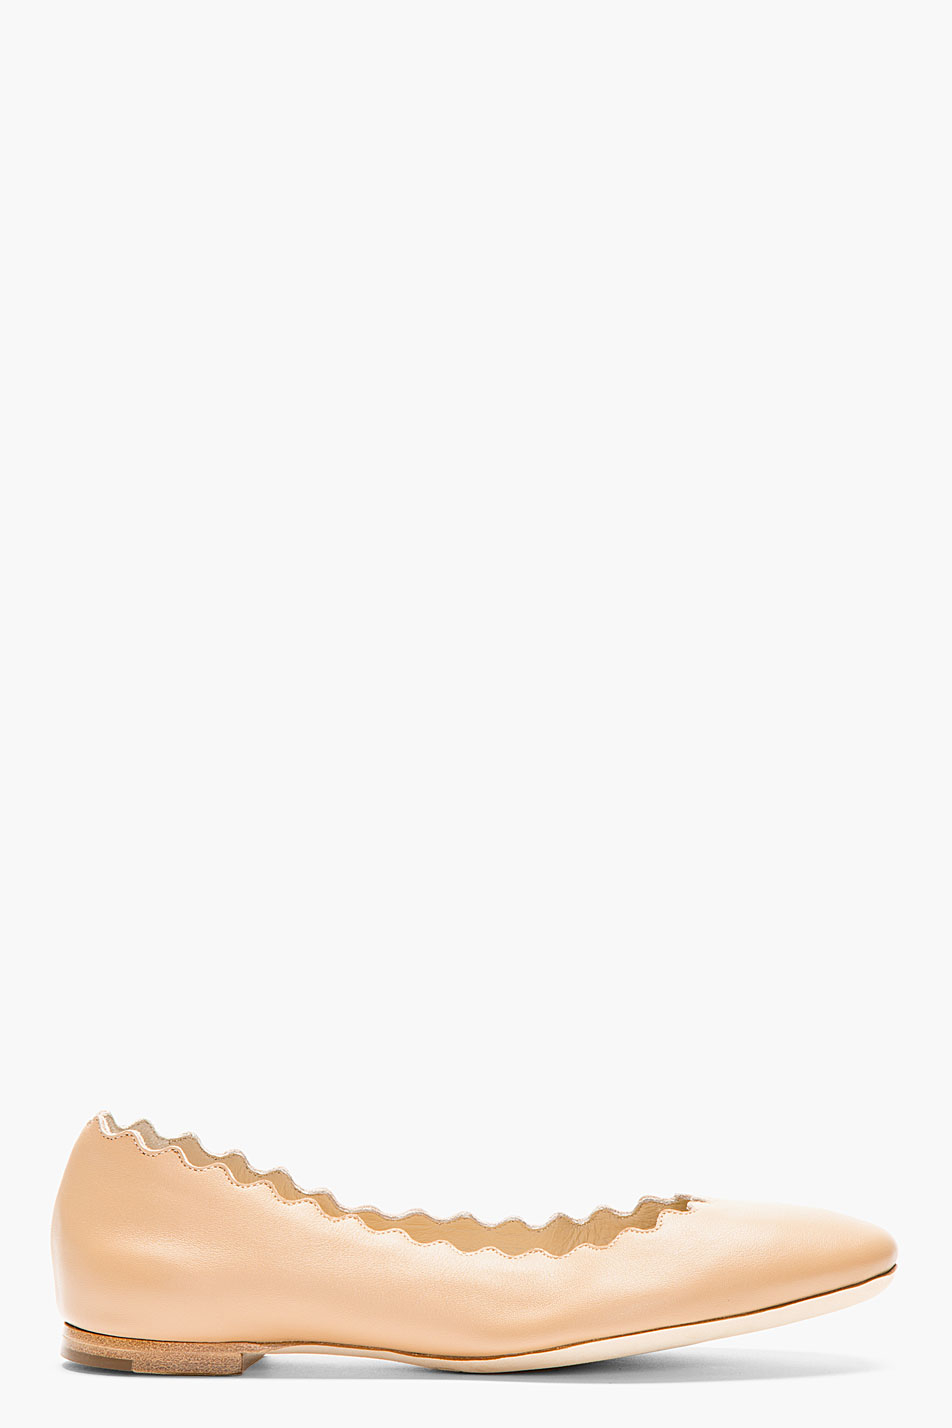 Chlo 233 Nude Leather Scalloped Ballerina Flats In Natural Lyst